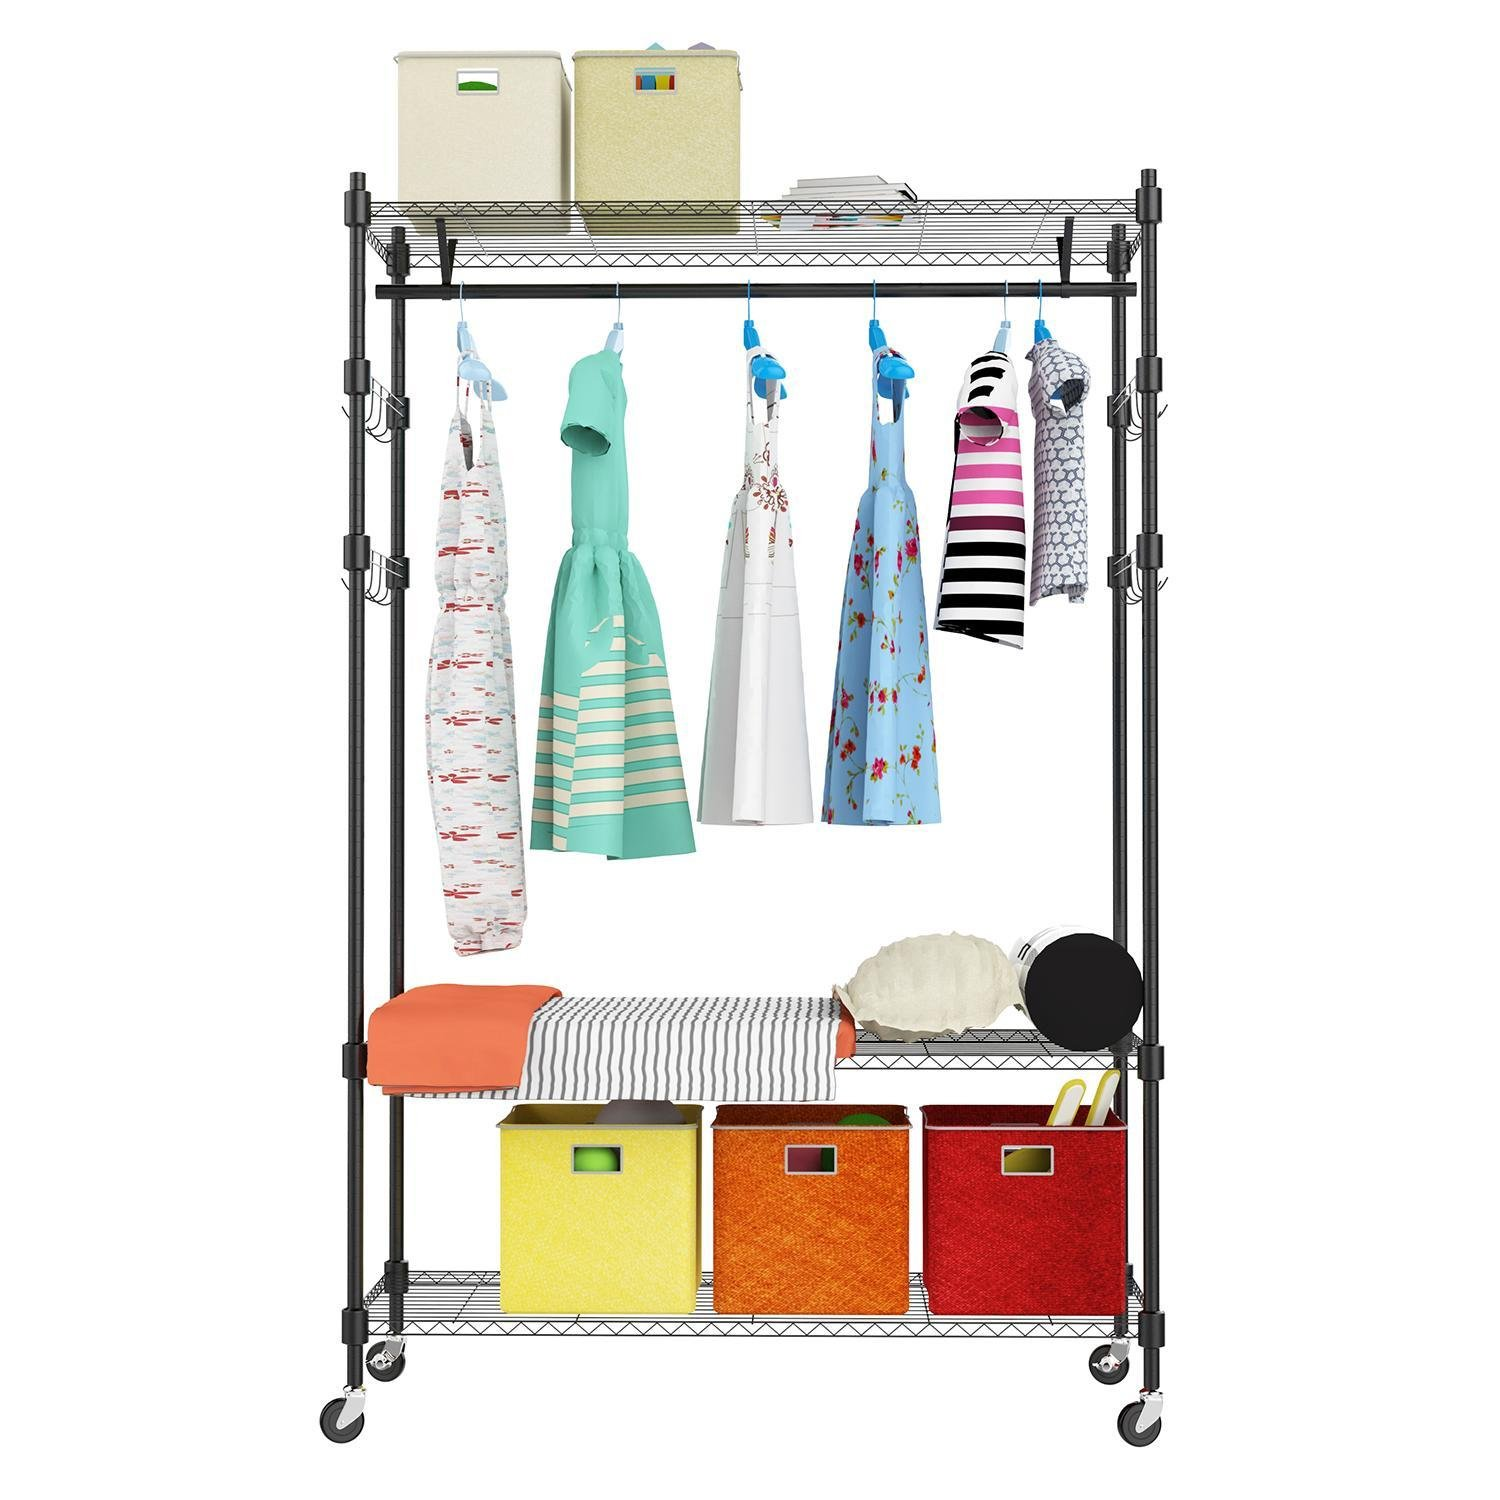 Goodfans 3-Tier Heavy Duty Rolling Garment Clothes Rack with Shelves, Chrome Finish (US Stock)